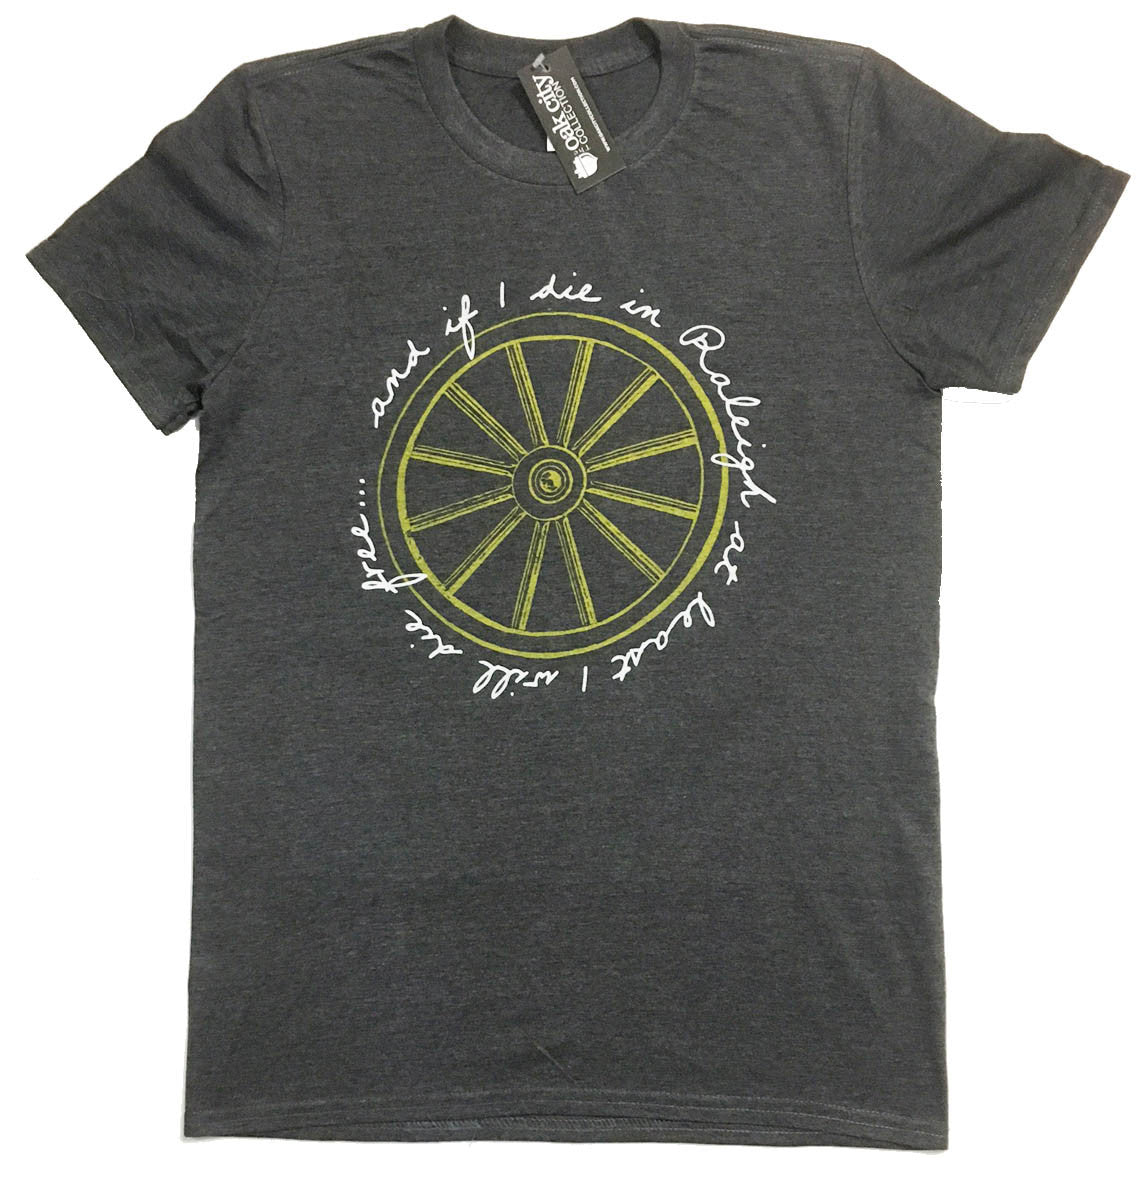 Wagon Wheel Lyrics Shirt